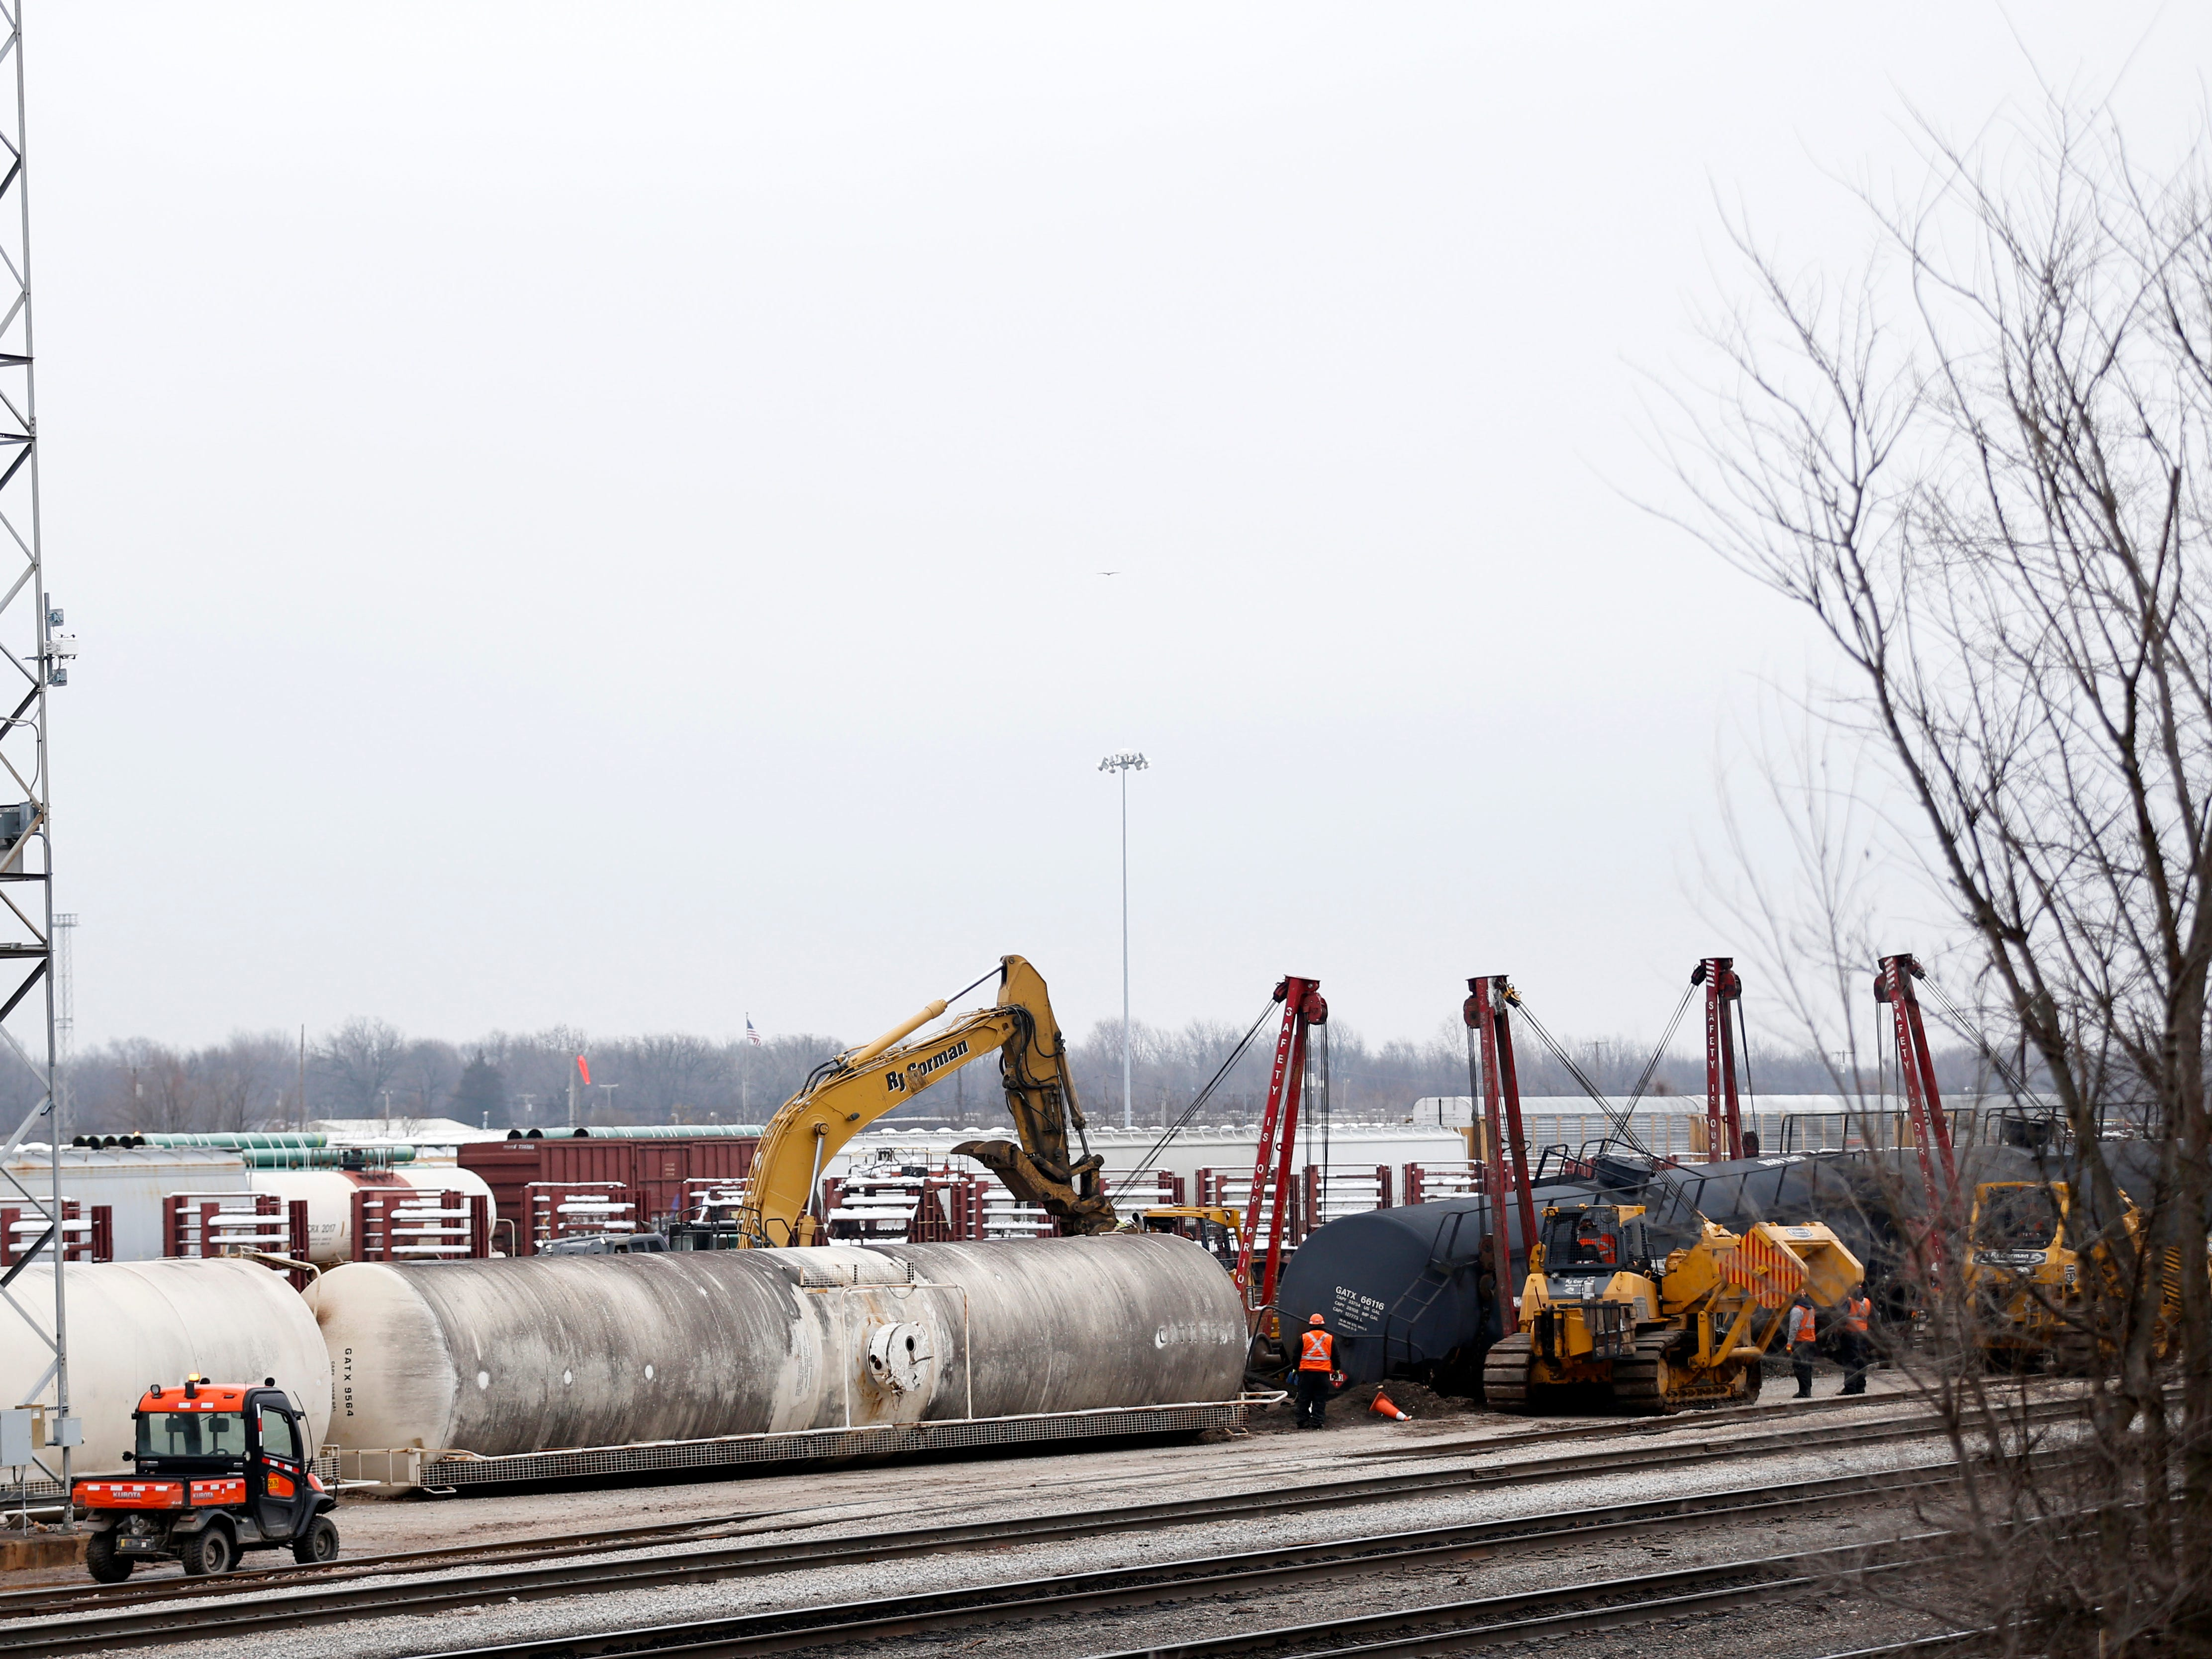 BNSF railroad crews use heavy equipment to lift railcars after they derailed early Monday, Jan. 14, 2019. Four railcars and a locomotive derailed in the rail yard just north of West Division Street near North Brown Avenue.